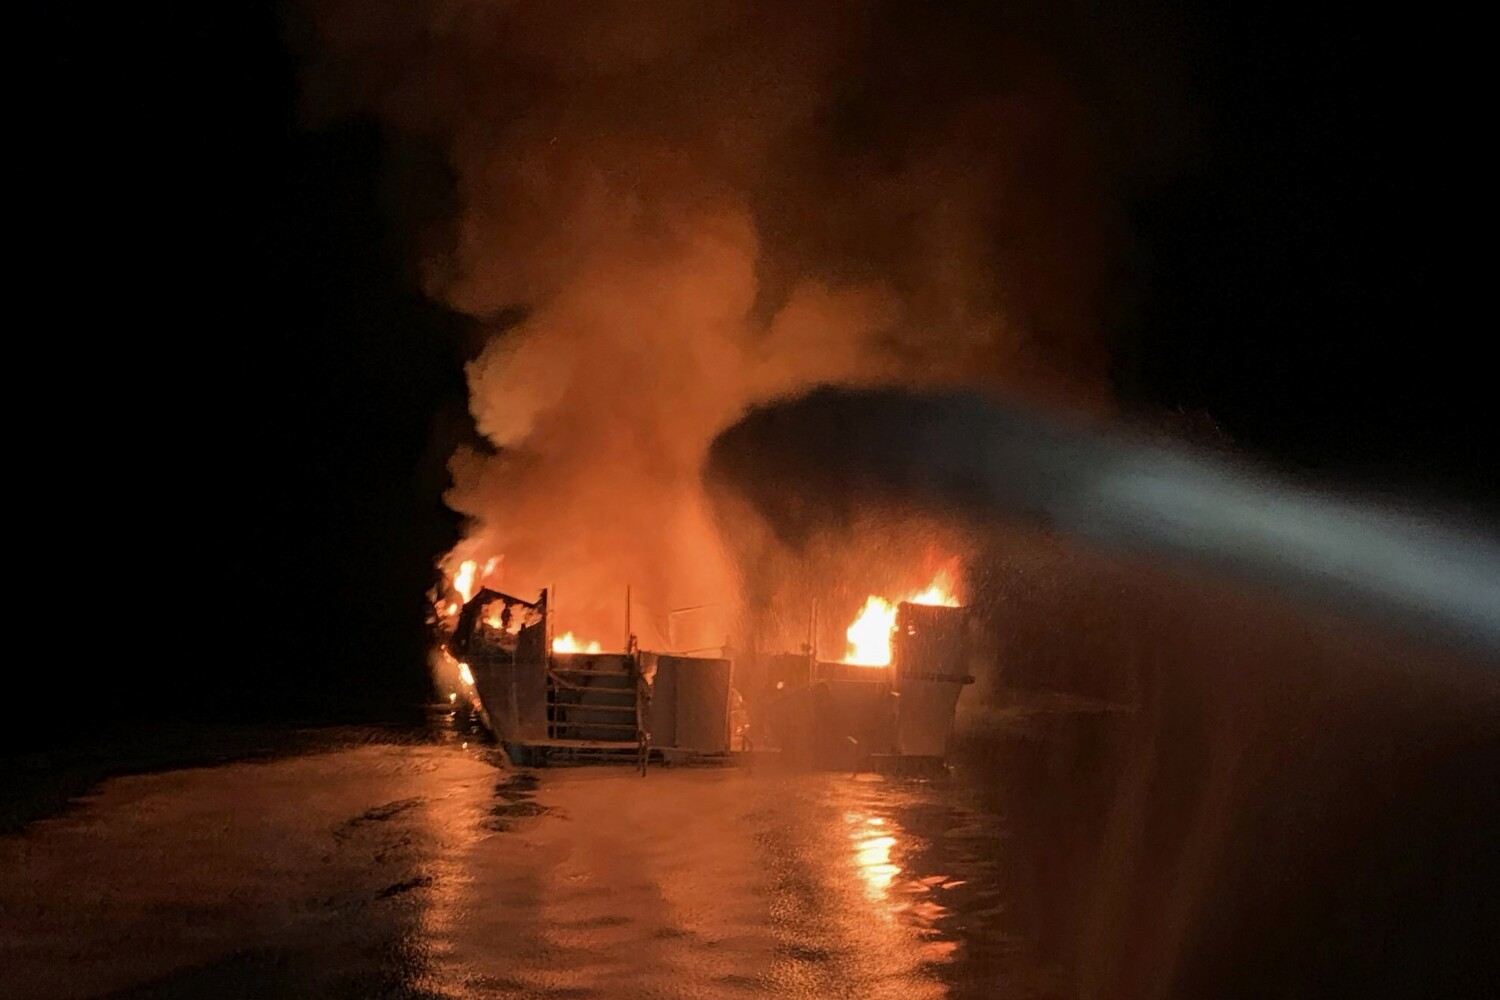 Coast Guard to enact sweeping safety reforms in wake of deadly Conception boat fire